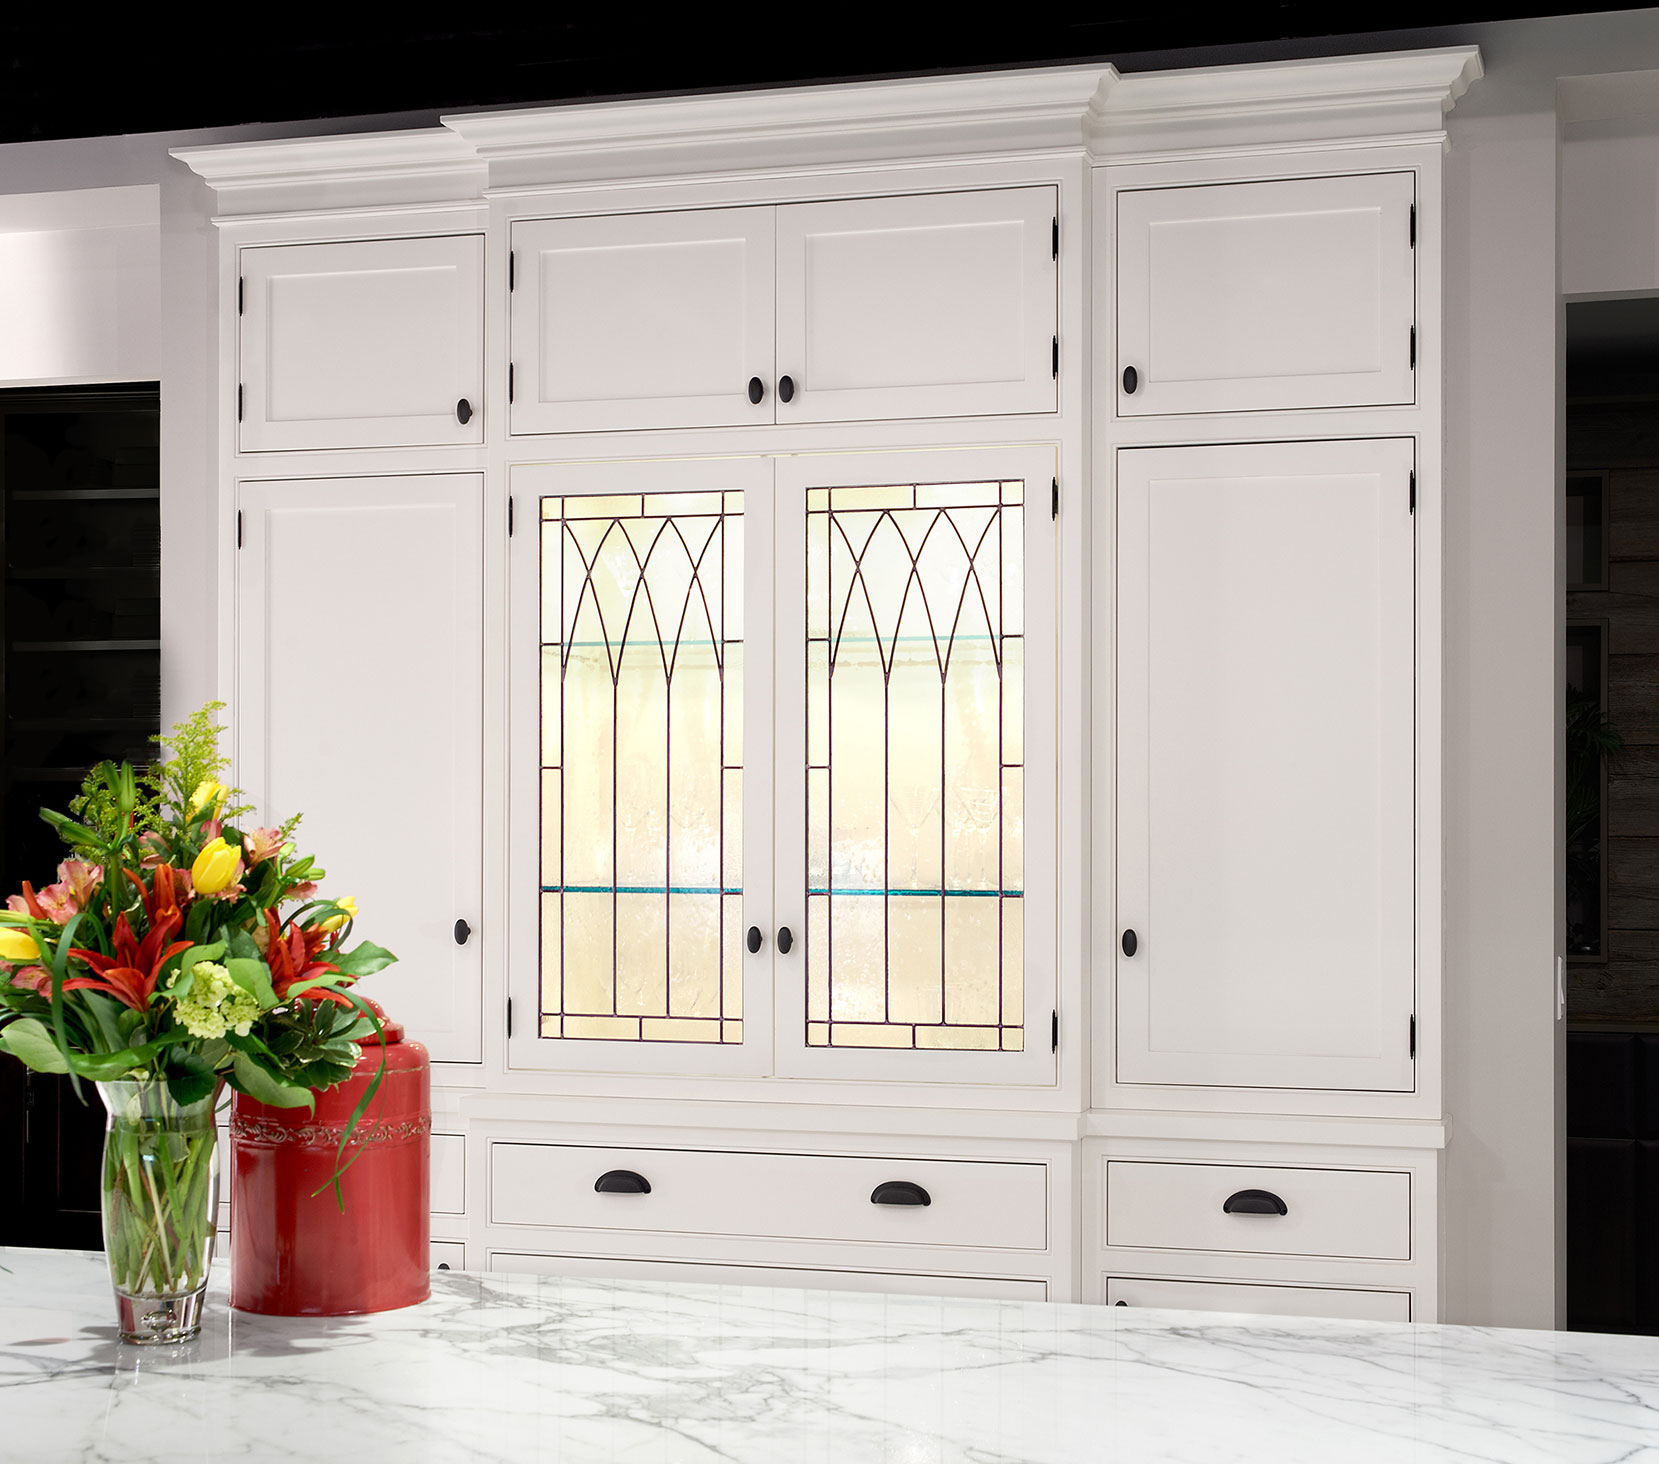 Wolstencroft-showroom-cabinetry